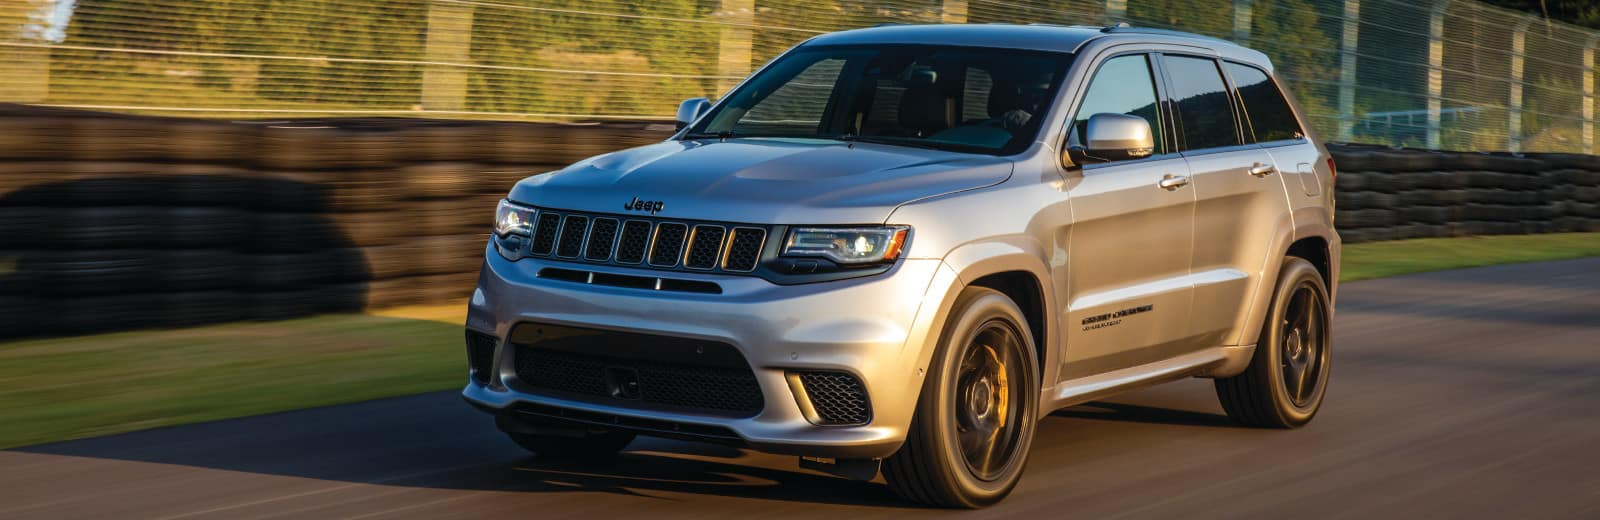 hight resolution of a jeep grand cherokee diving down an open track